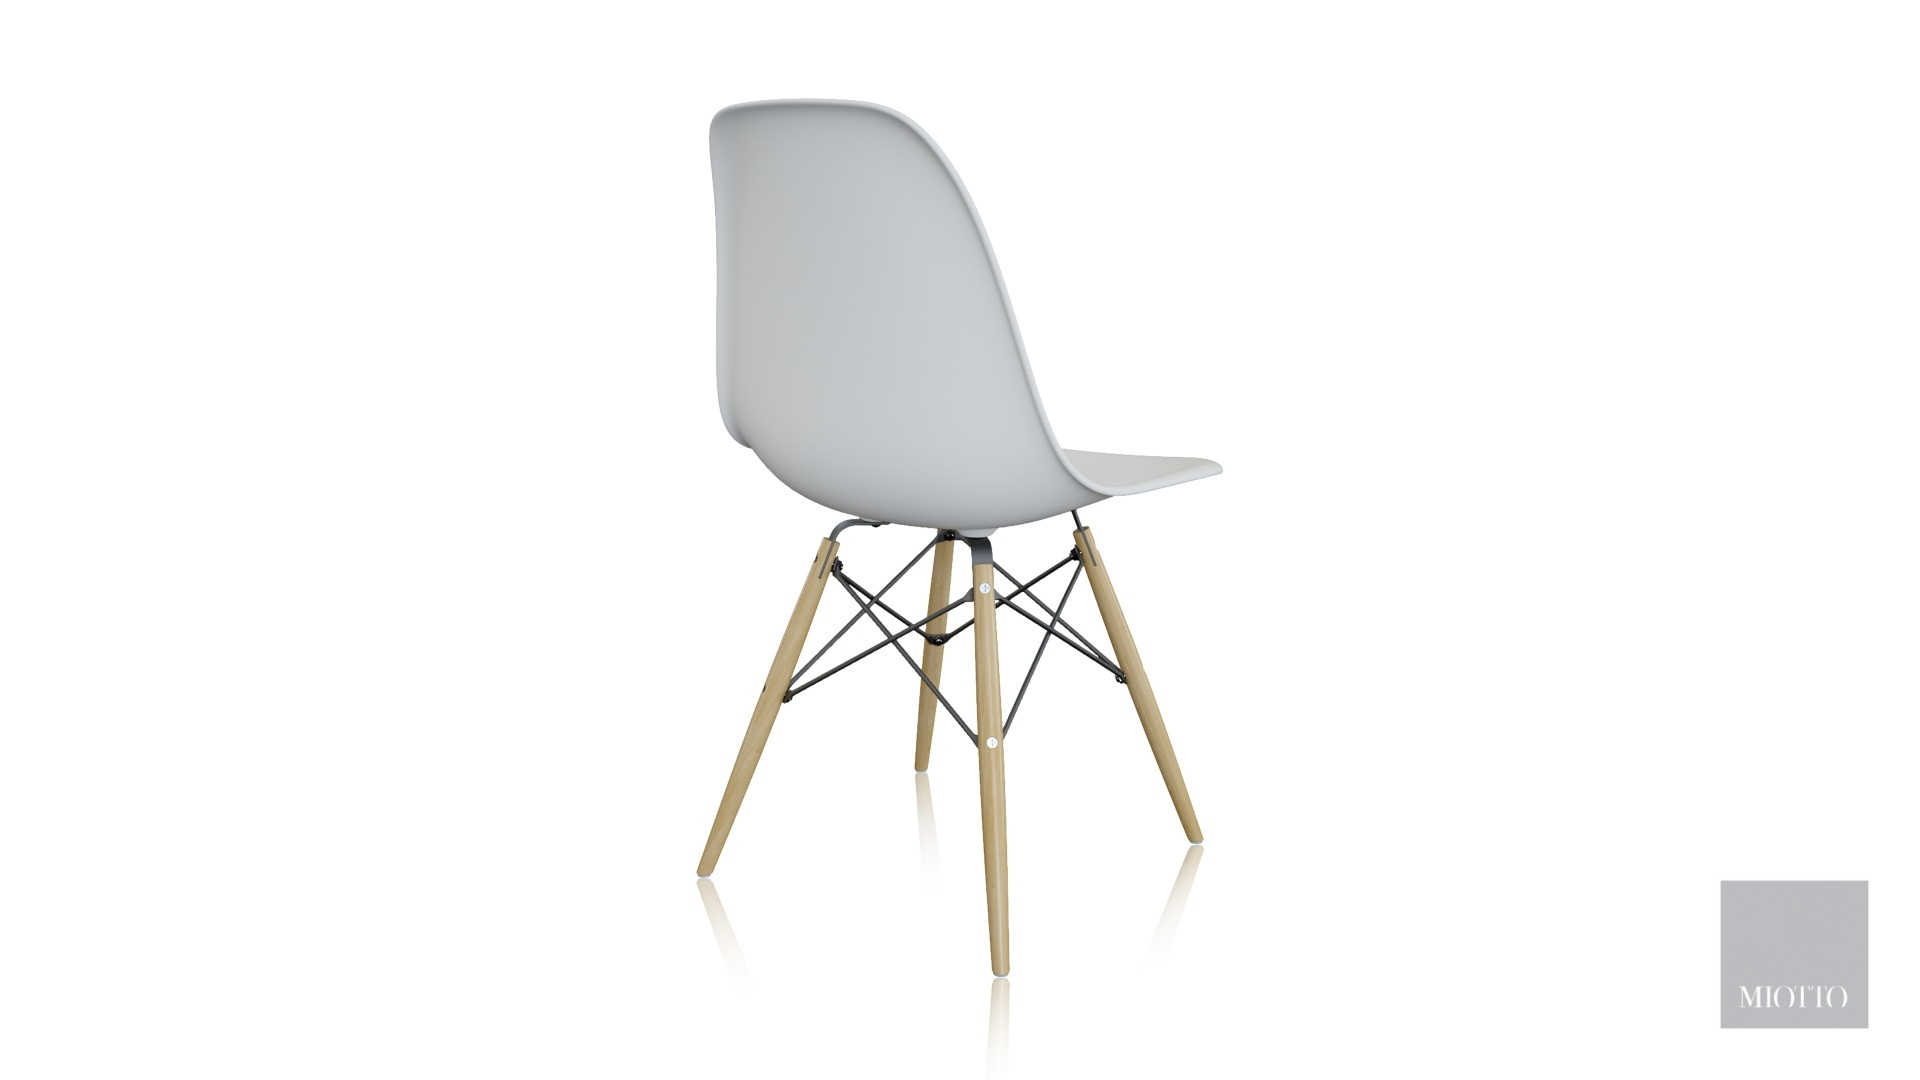 miotto_larici wood DC white back T miotto dining chair furniture